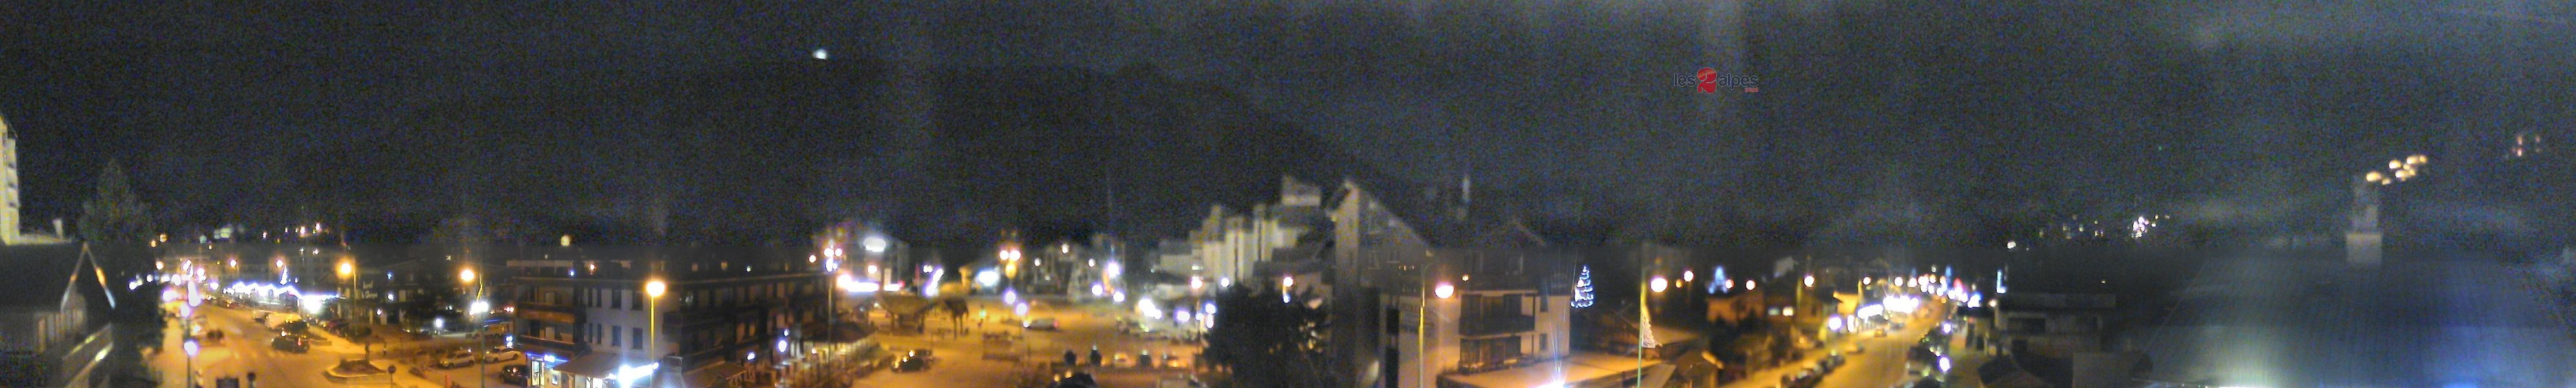 Les Deux Alpes